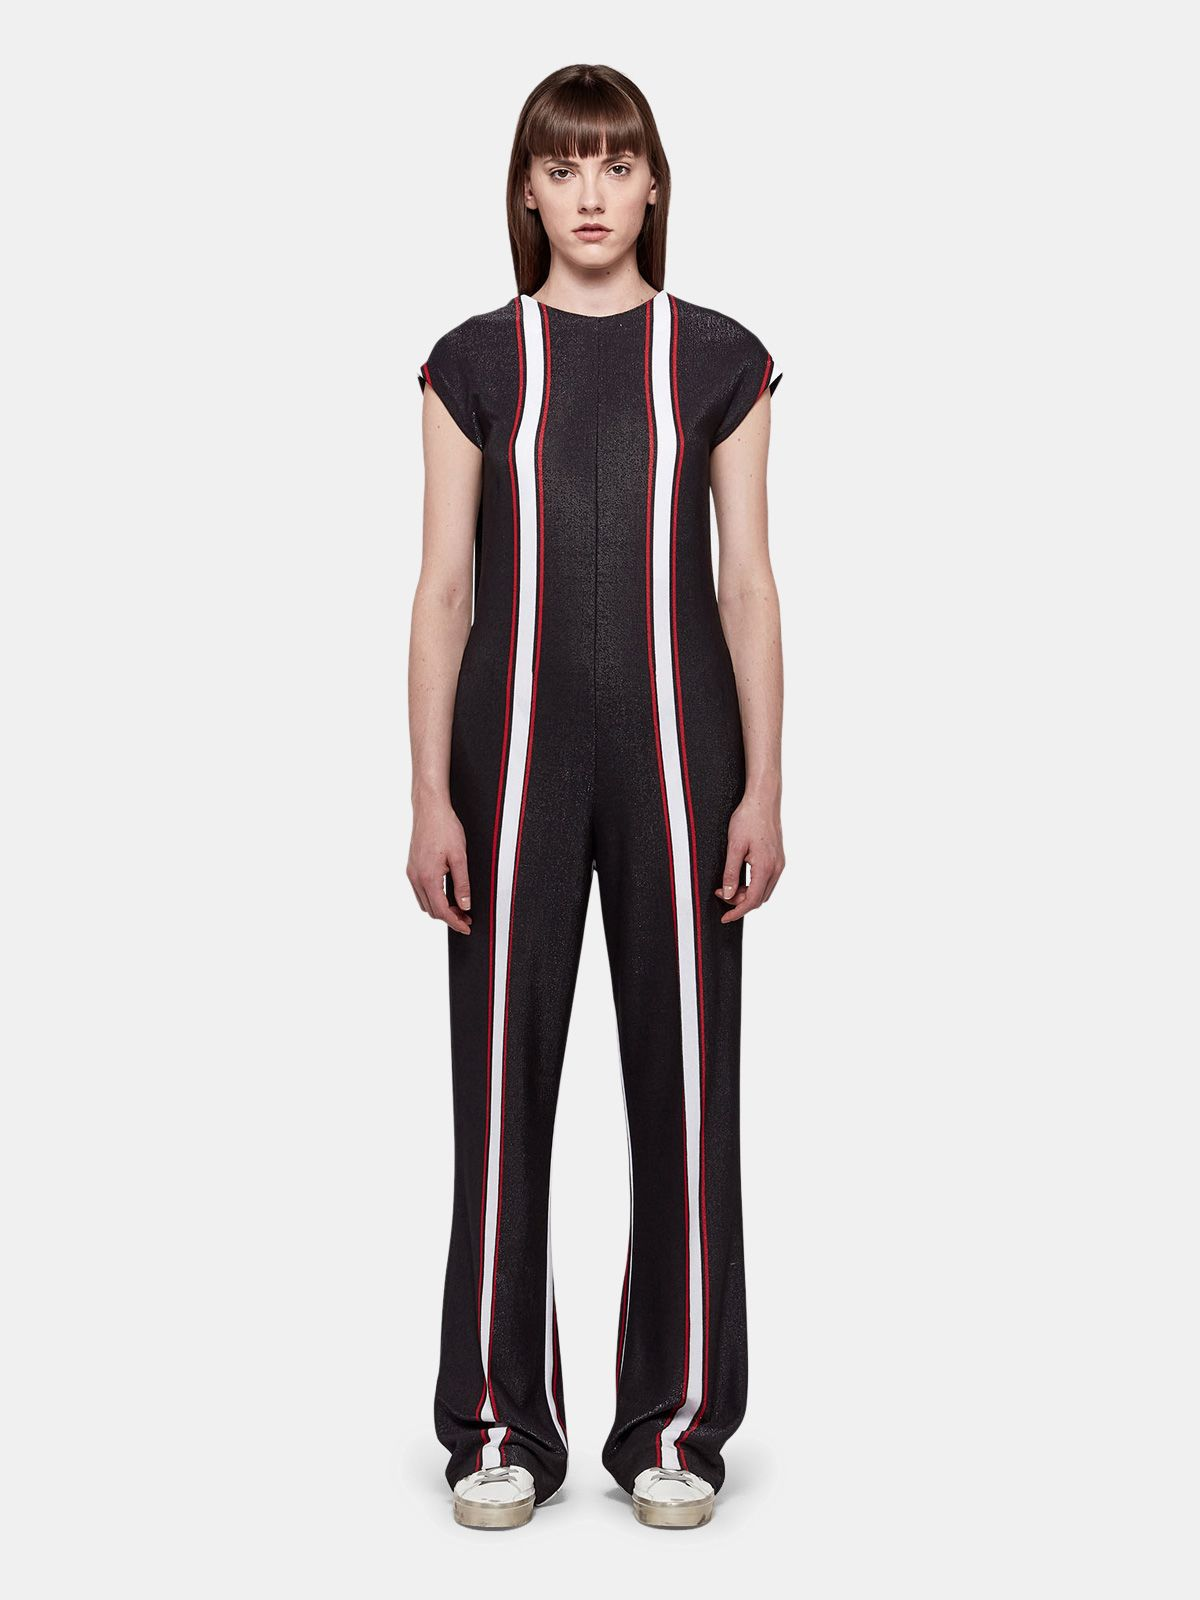 Golden Goose - Narumi jumpsuit with contrasting vertical stripes in